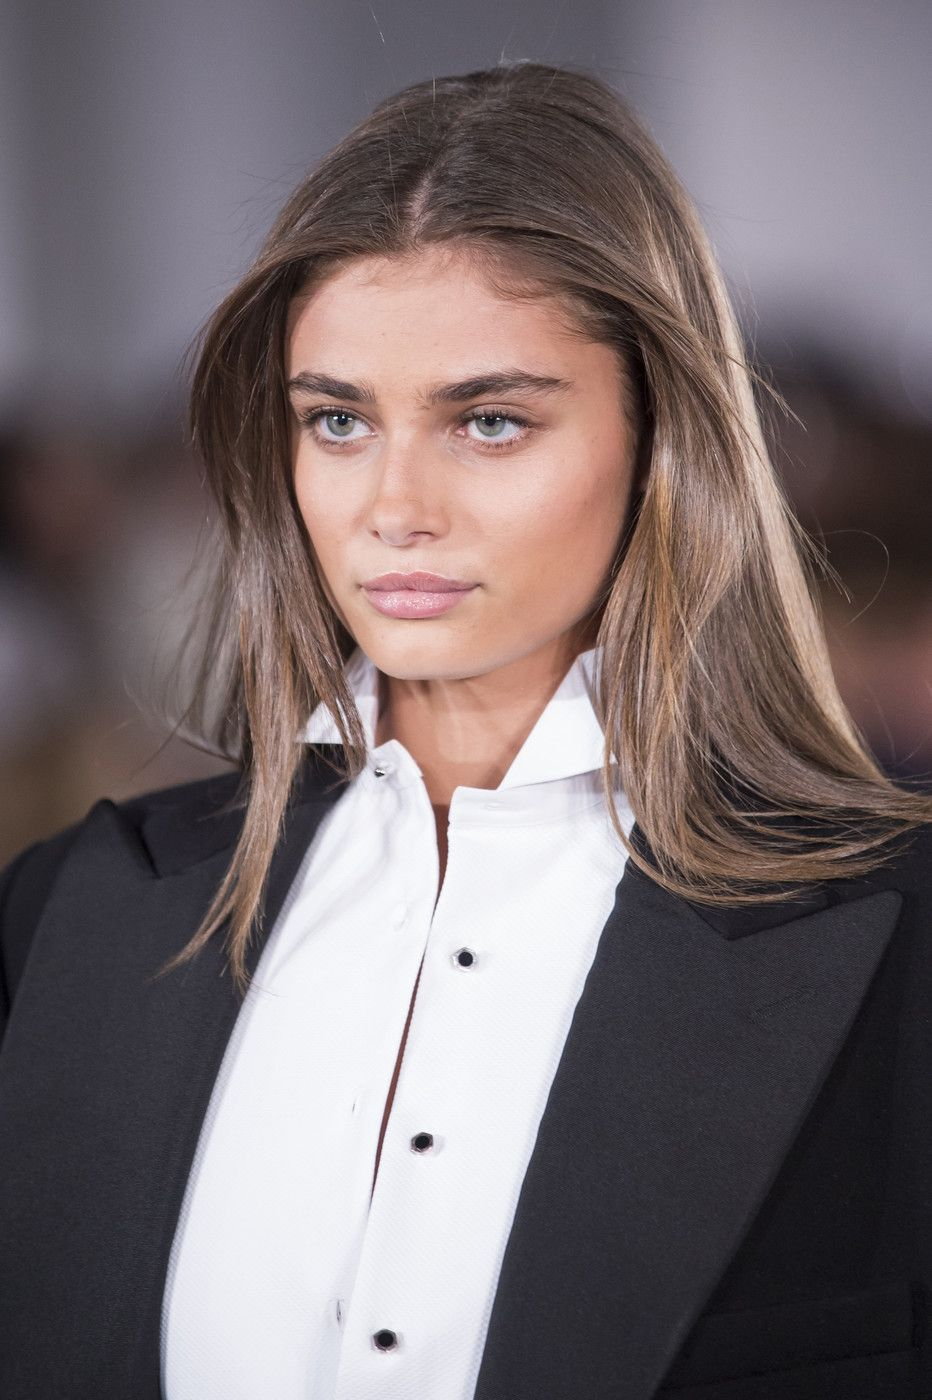 Pin By Opprvsty On Taylor Marie Hill Taylor Hill Taylor Hill Style Beauty